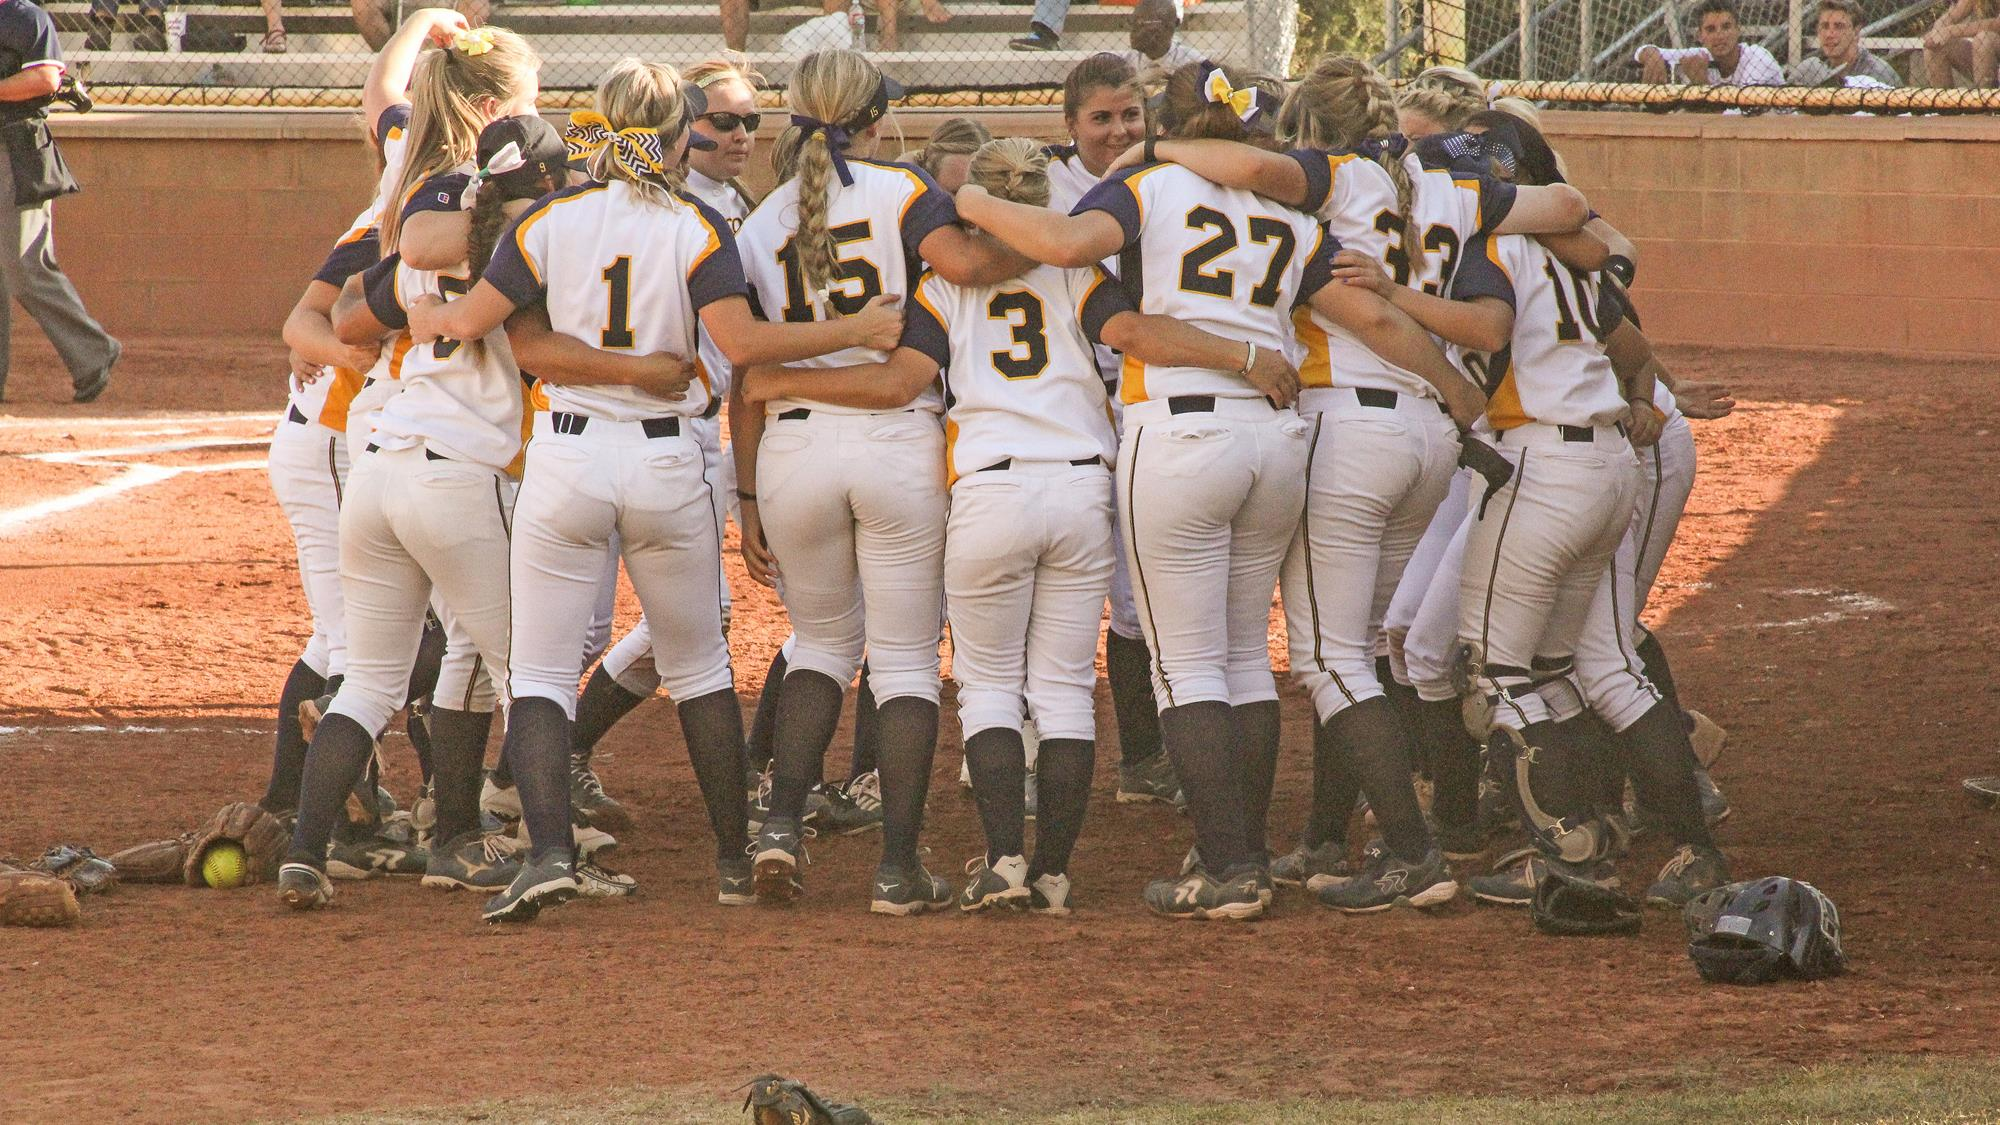 MSUB softball team to hold open tryouts - Montana State University